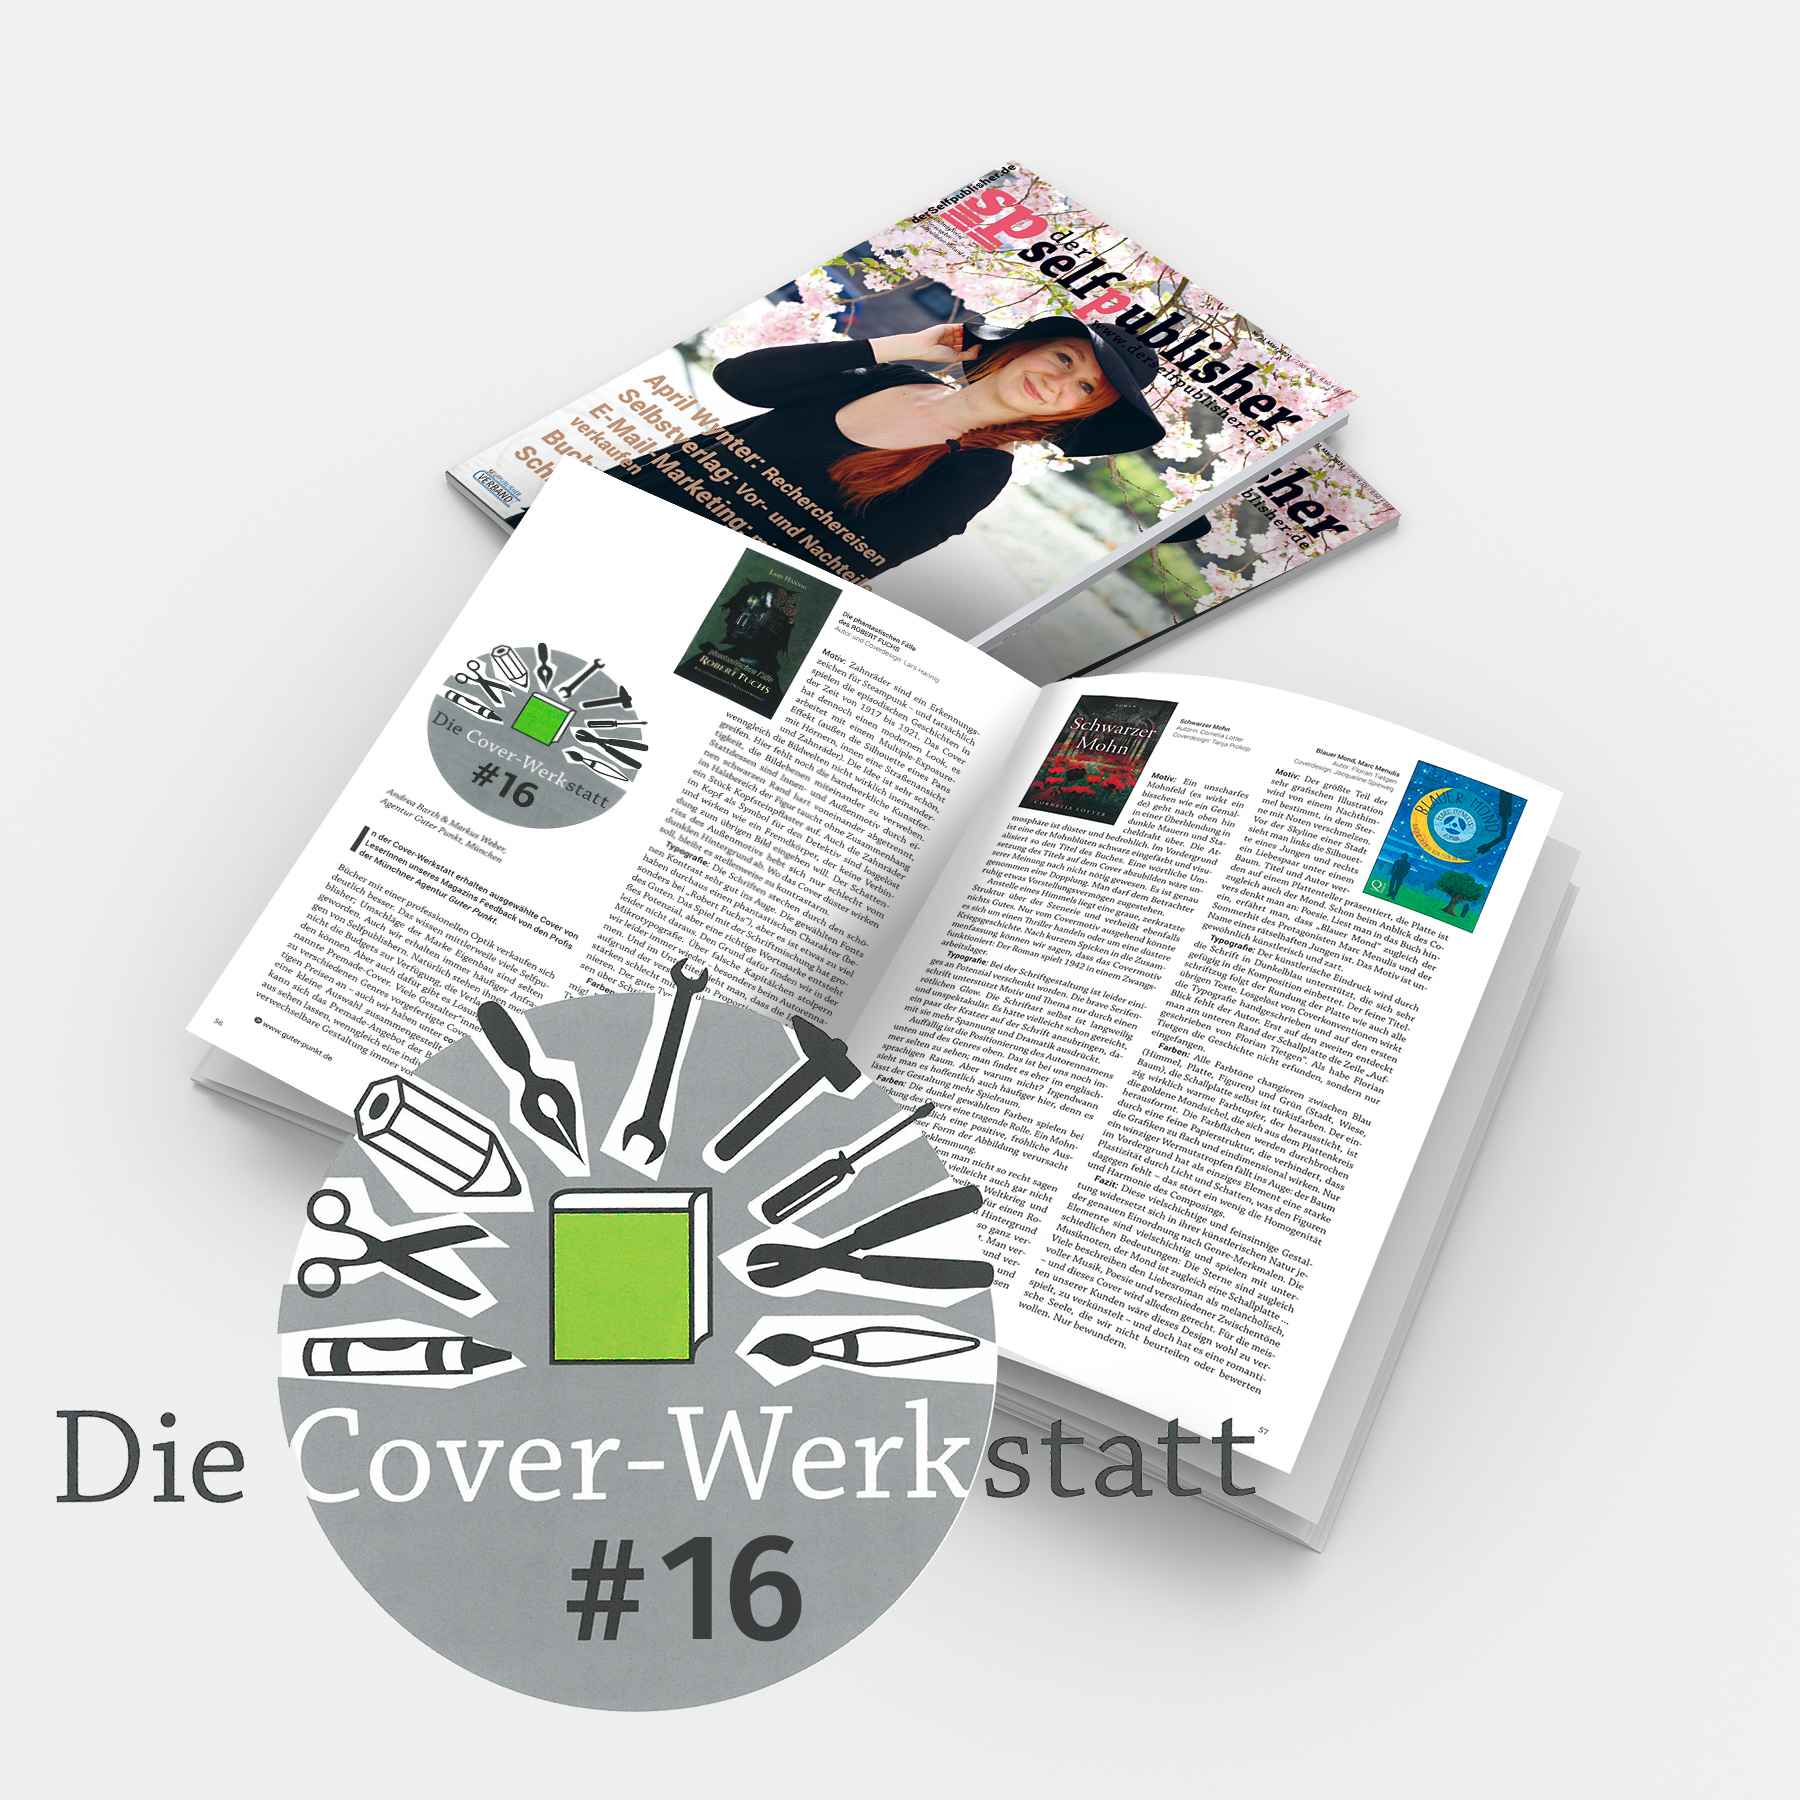 Coverwerkstatt #16 in »der-selfpublisher« Nr. 21, März 2021